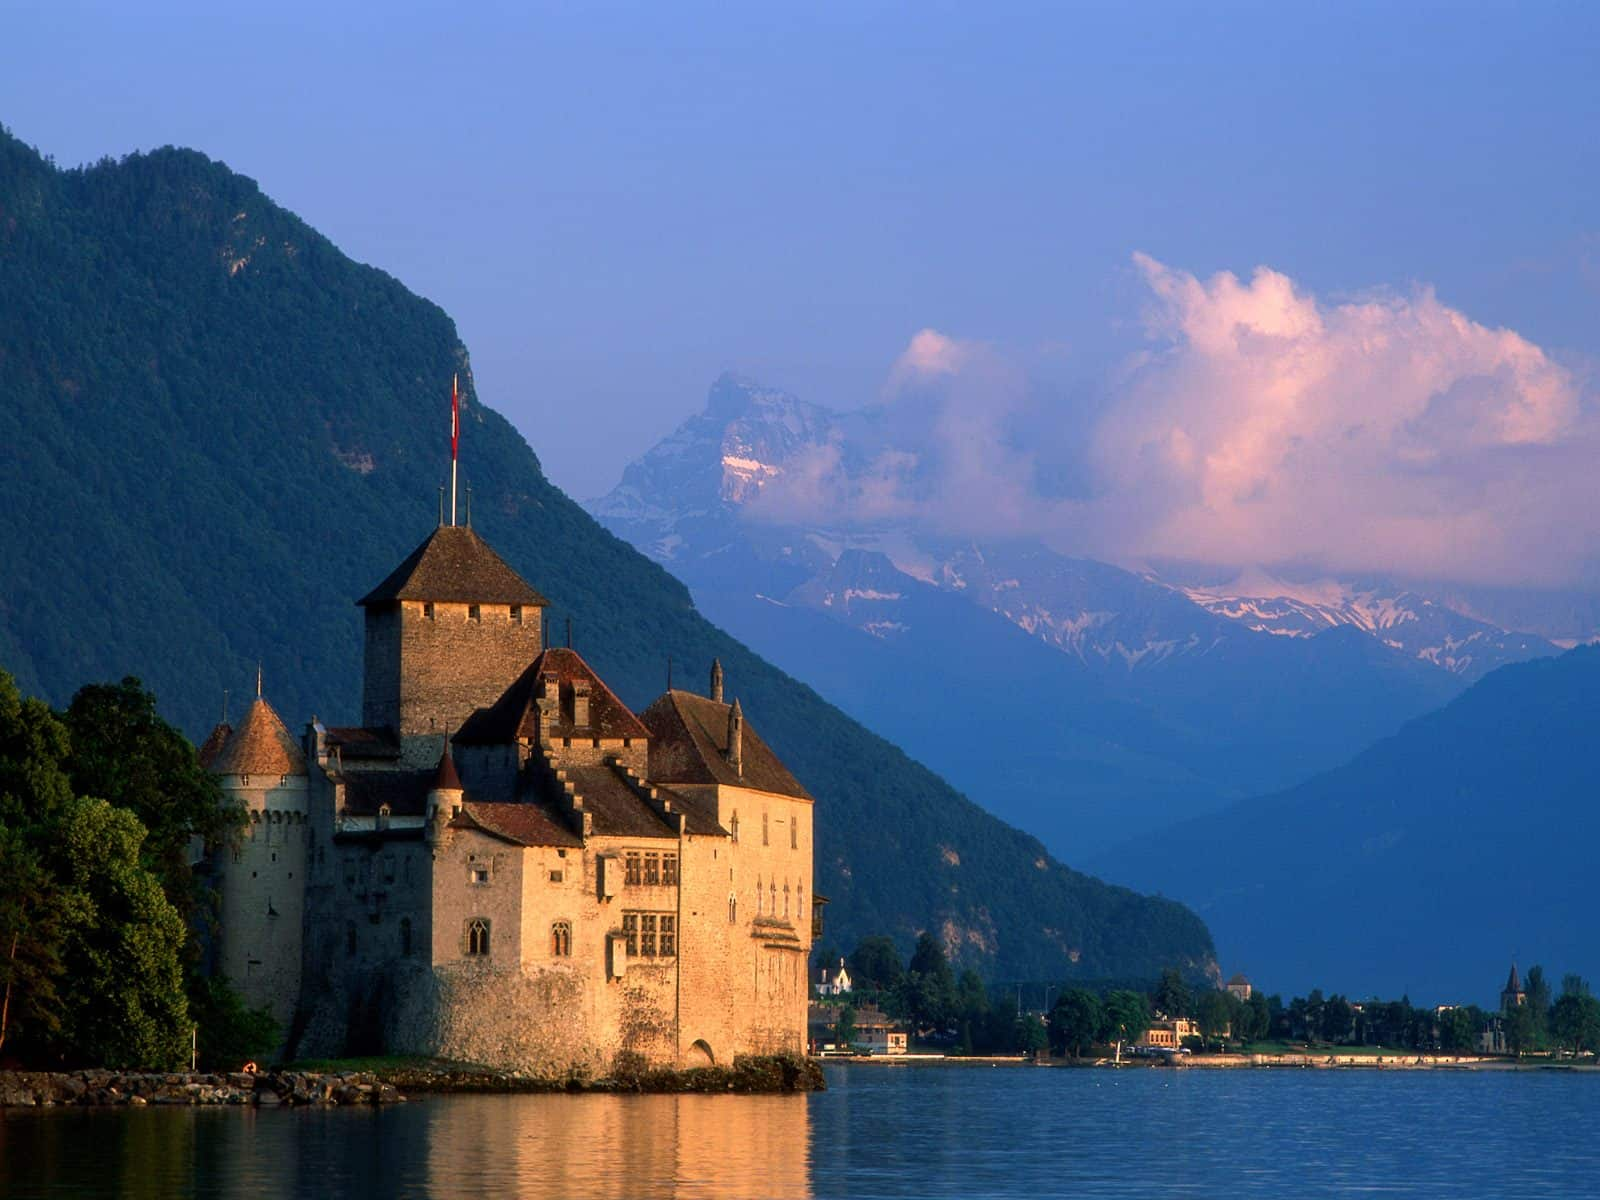 Exclusive-Escapes-Travel-to-Switzerland-Zurich-Cities-in-Switzerland-Geneva-Switzerland-Lake-Geneva-Luxury-Travel-Magazine-1